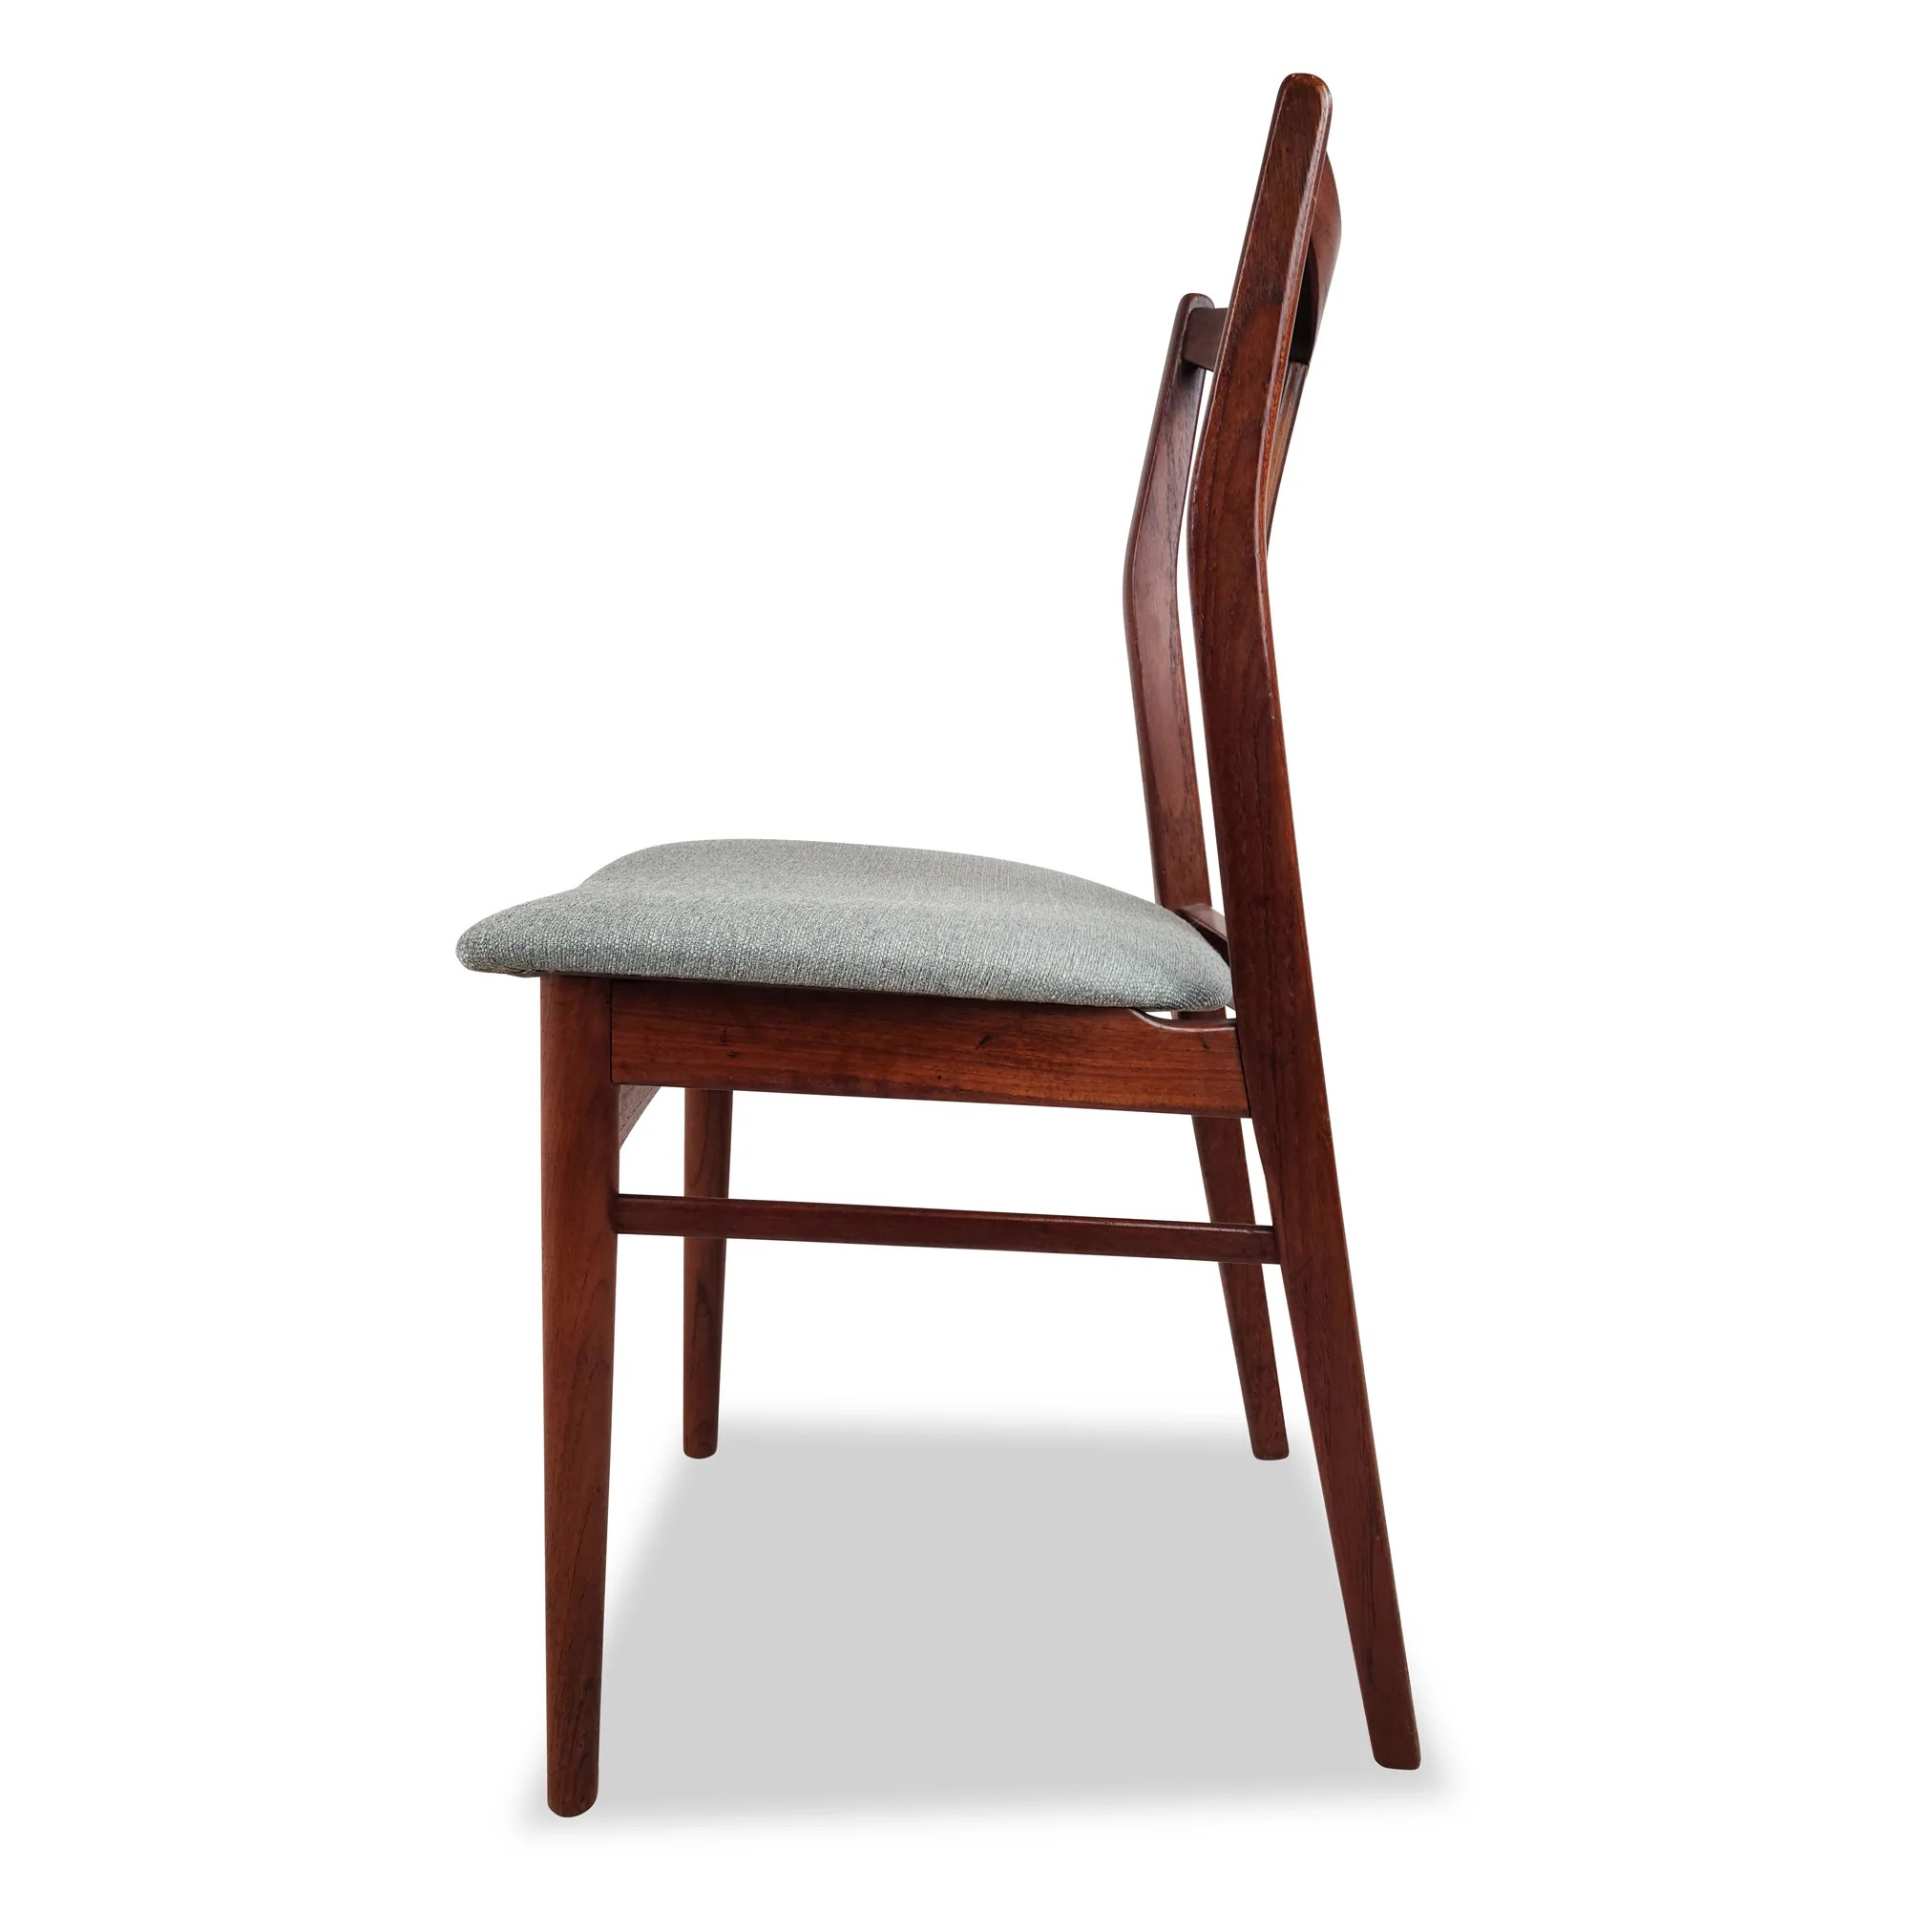 Teak Dining Chairs By Henning Sorensen Decade Five Furniture Co